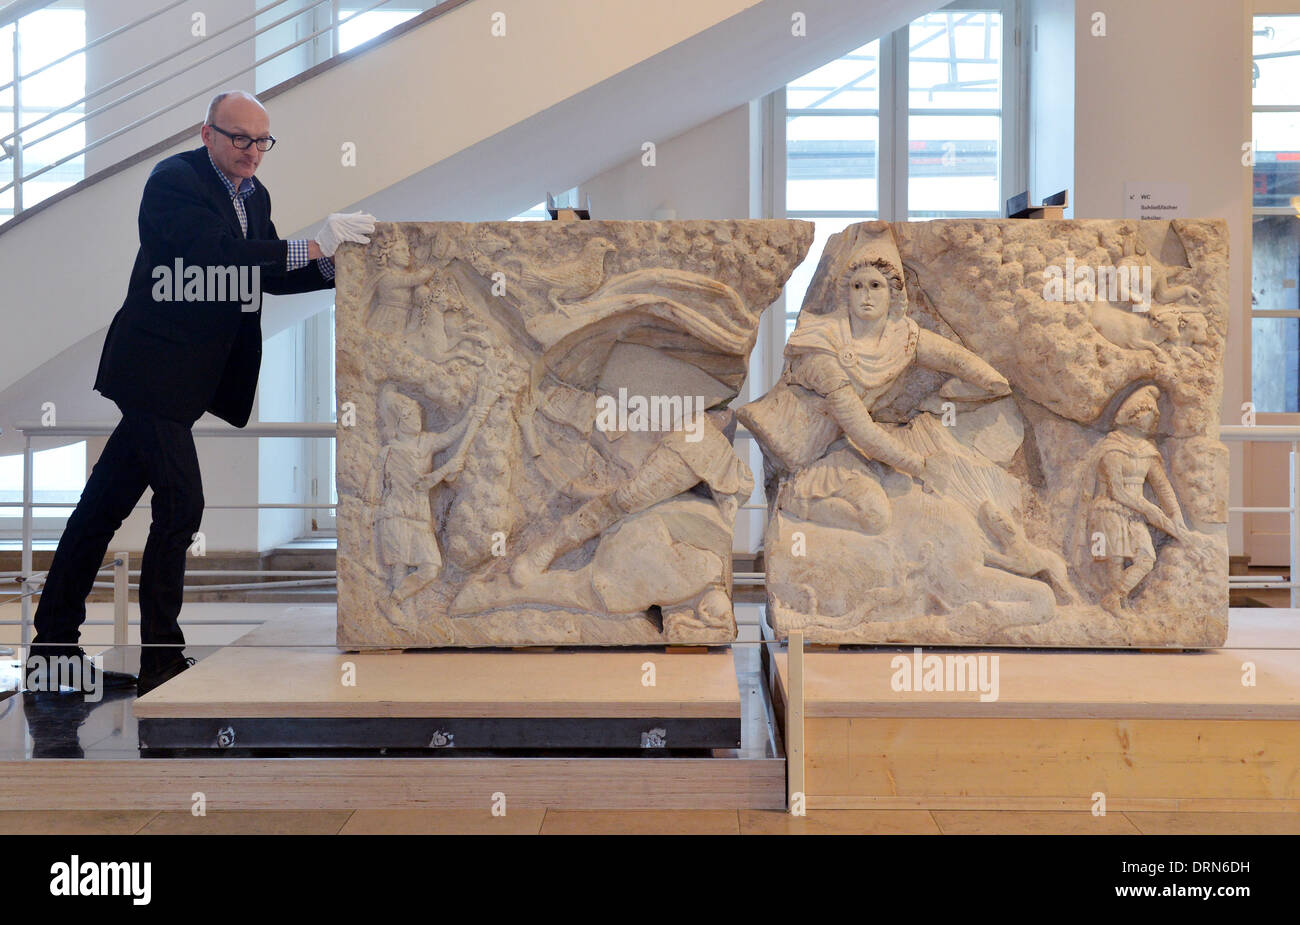 ATTENTION PUBLICATION BLOCKING PERIOD THURSDAY 30 JANUARY 2014 4.30 PM Oliver F. Morr, restoration and conservation manager at Baden State Museum pushes togteher the two pieces of the reconstructed Relief of Mithras of Tor Cervara in Rome in Karlsruhe Palace at the Baden State Museum in Karlsruhe, Germany, 29 January 2014. The relief weighs two tons and was built in 150 AD. The antique artwork was damaged during a bomb attack, and stolen and sold in parts. The Baden State Museum (Badisches Landesmuseum) put the pieces together. Photo: Uli Deck/dpa - Stock Image